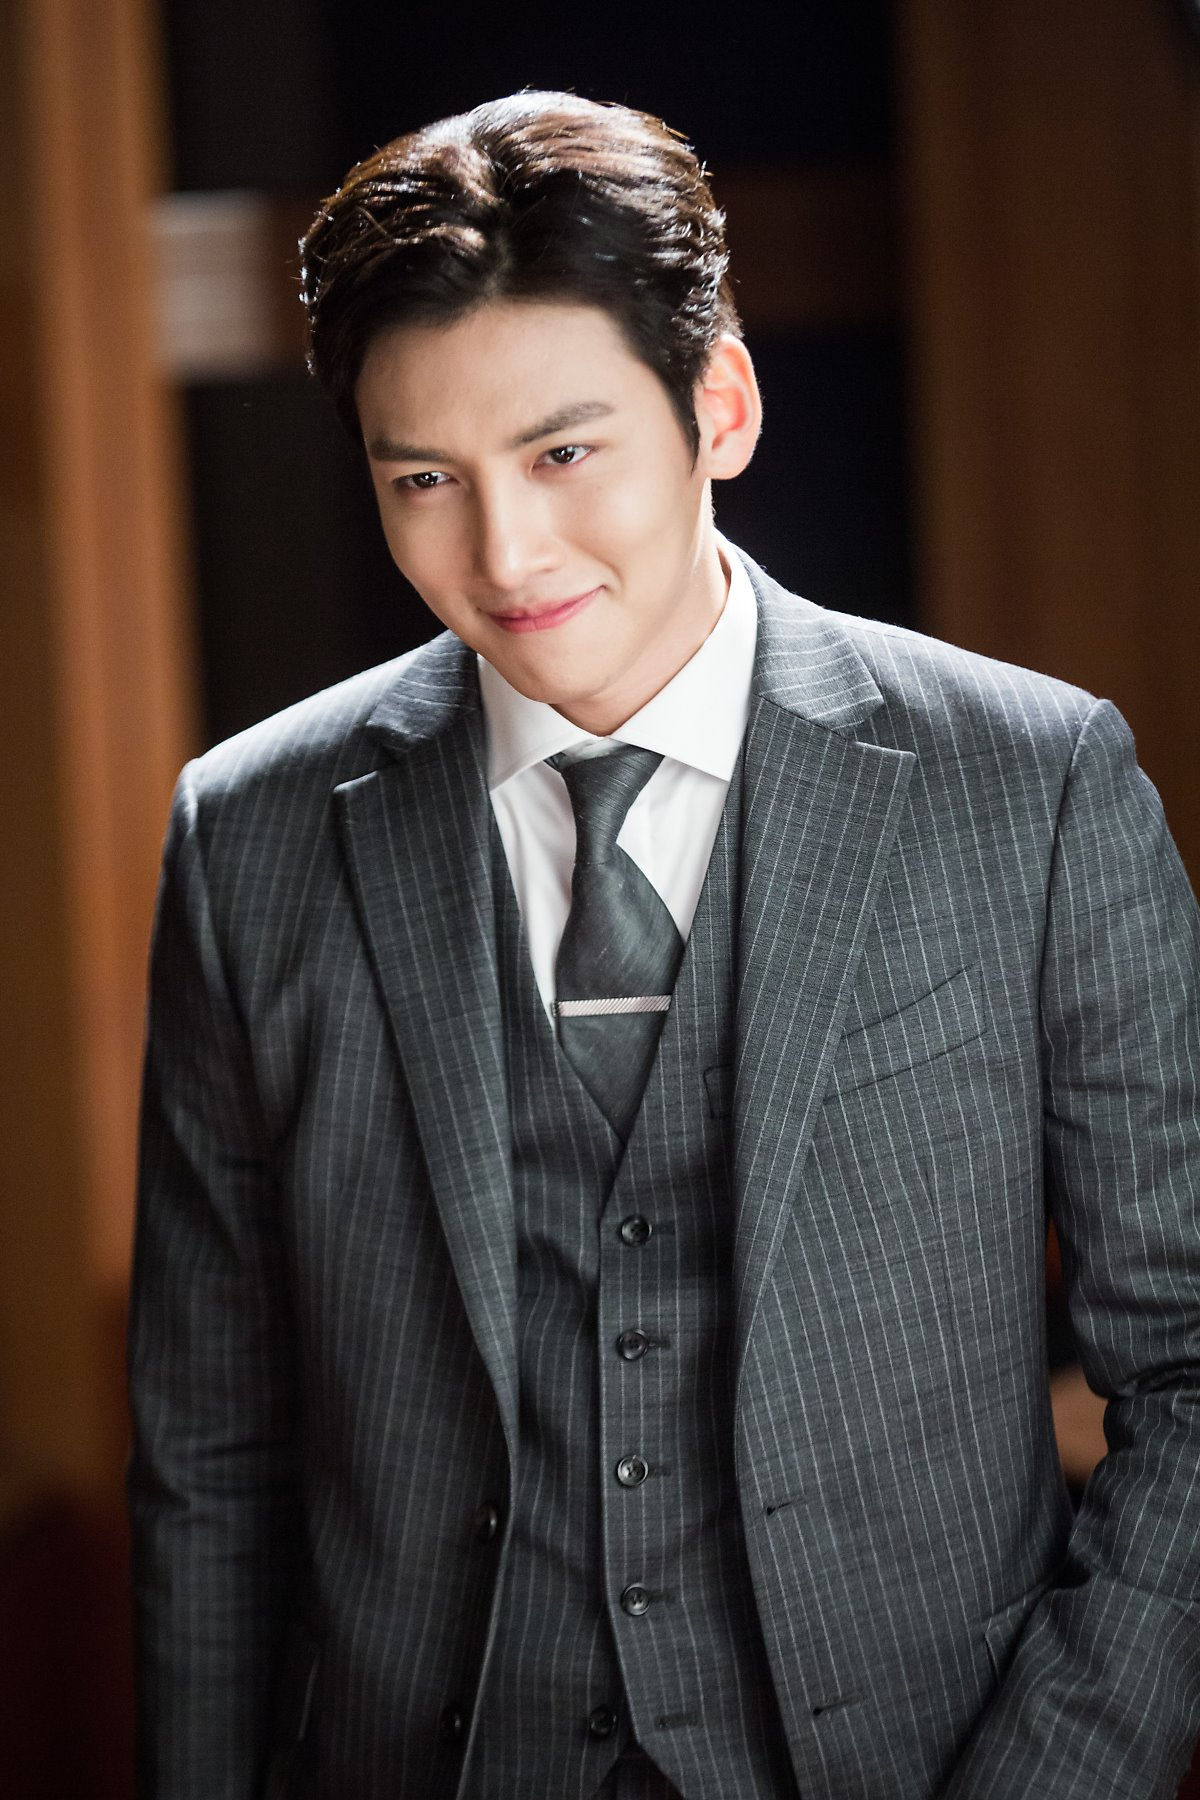 Conference Drama Ji Chang Wook Looks Dashing In Suits In